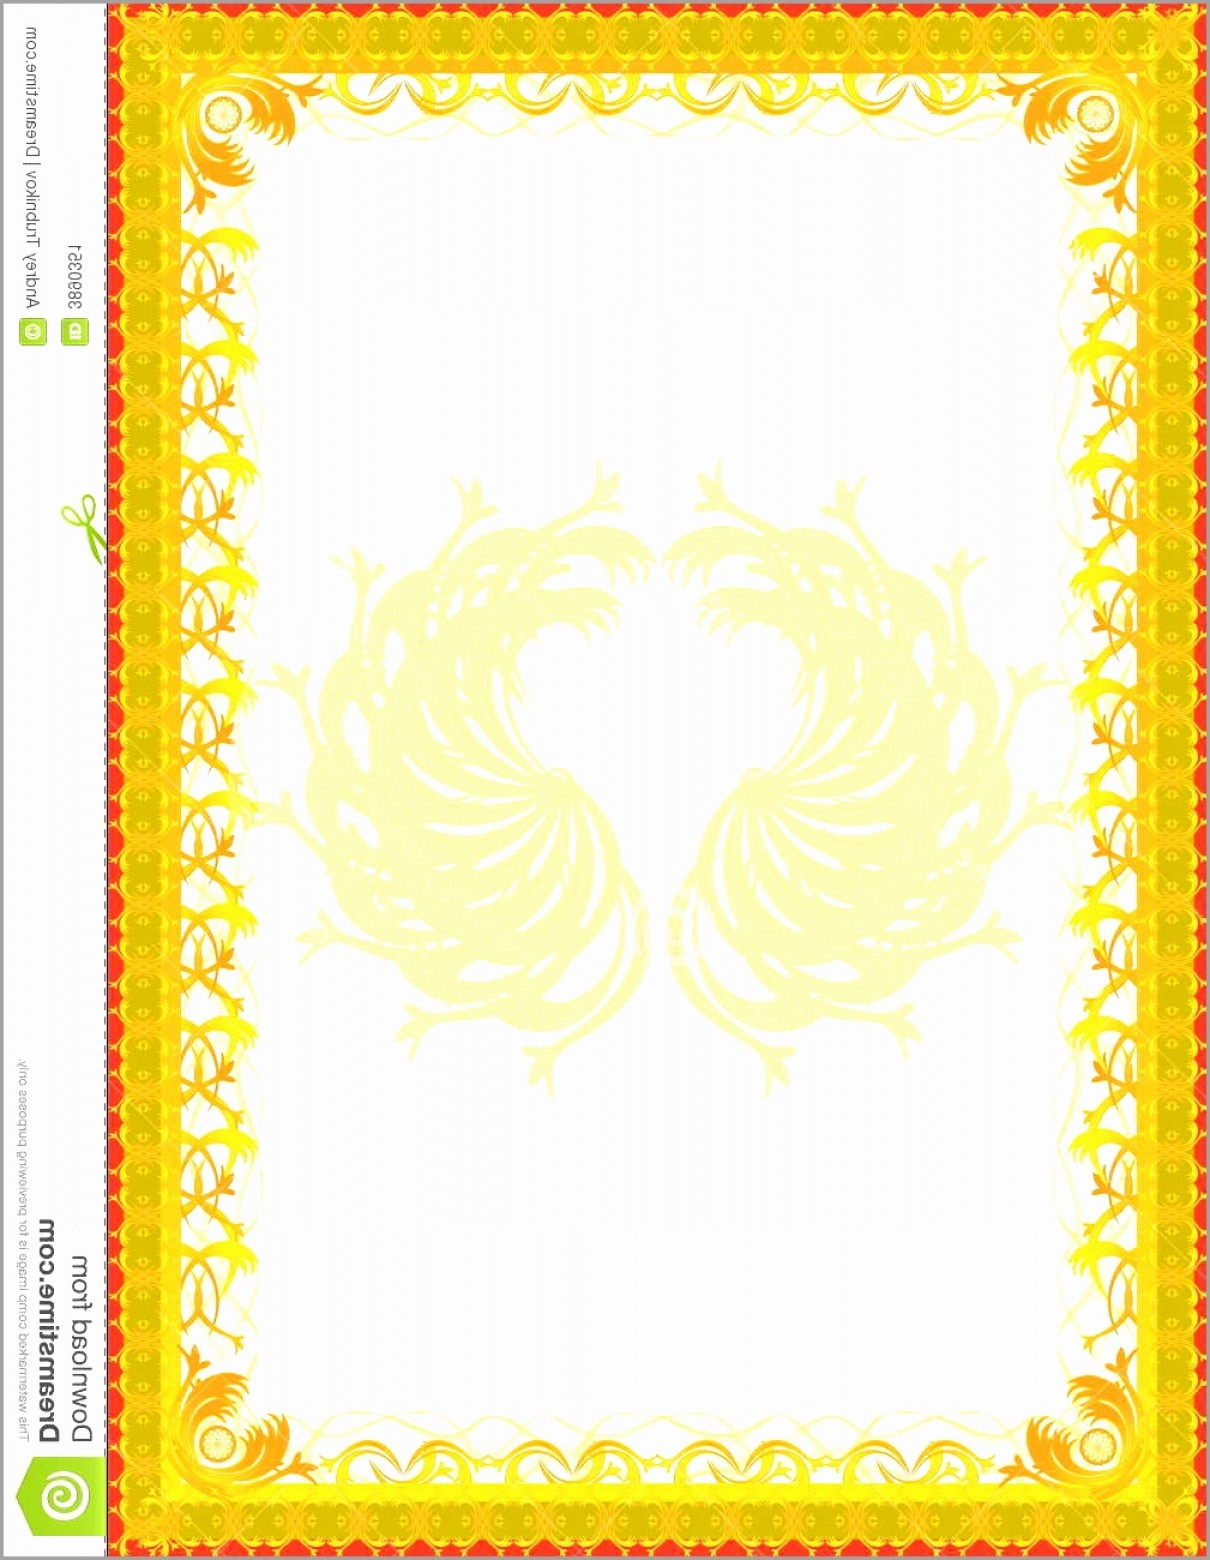 1210x1560 Simple Frame Border Design. Elegant Simple Border Vector Design